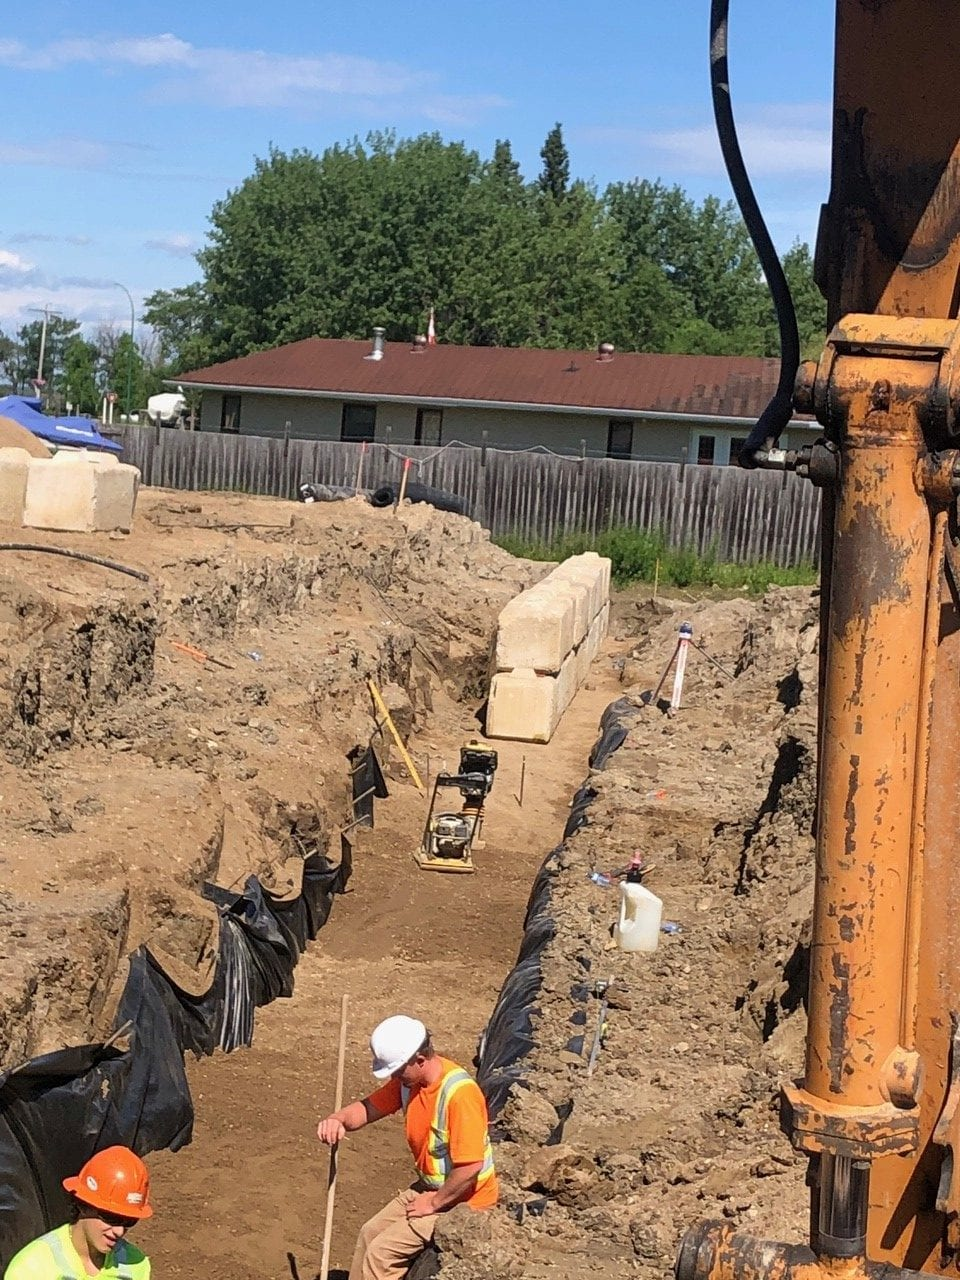 Workers digging and setting up a trench